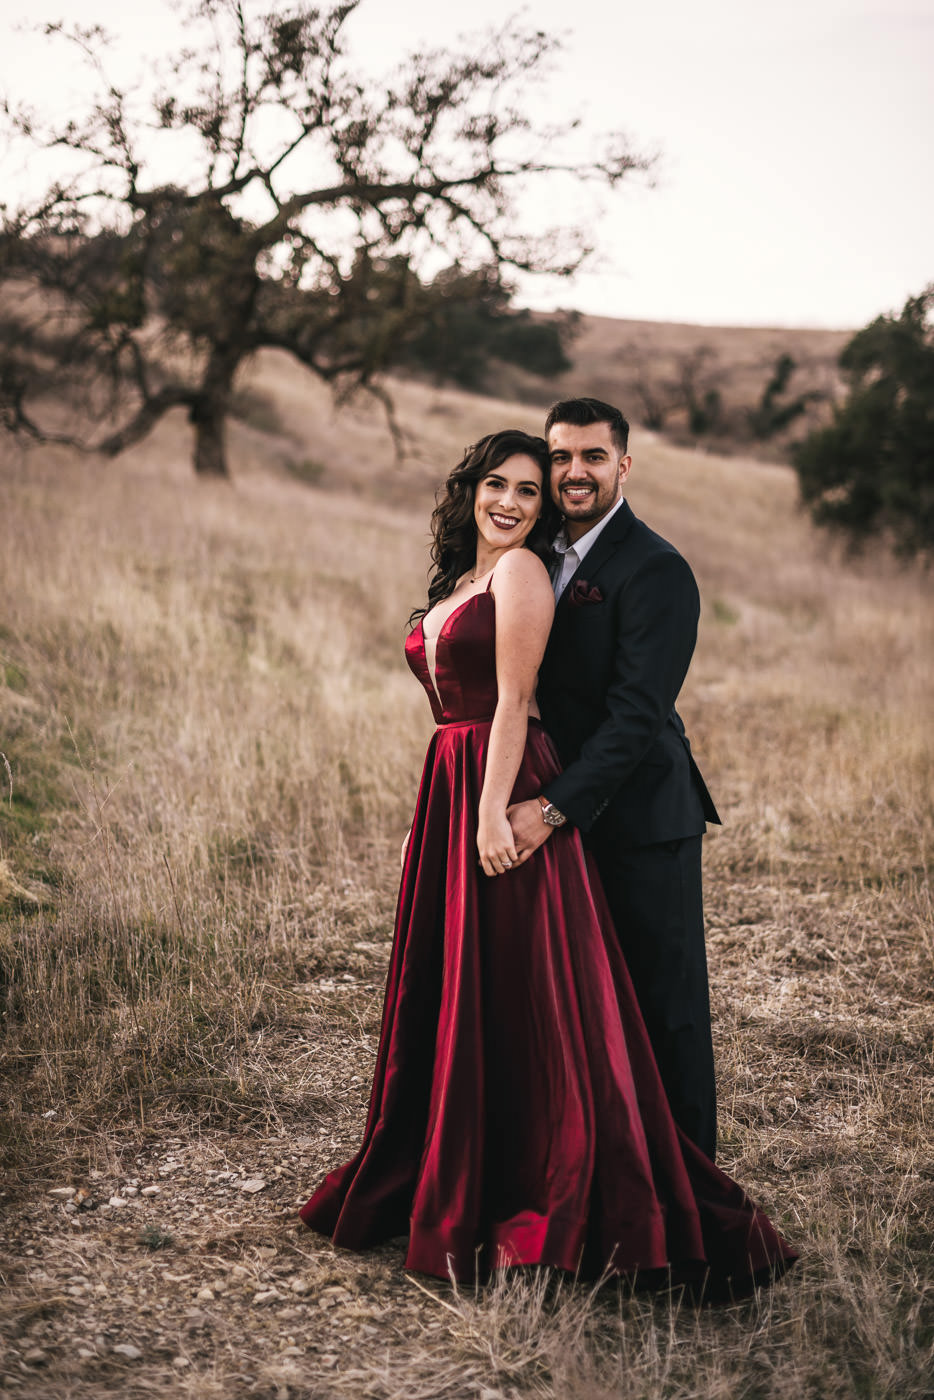 Couple has a stunning engagement session in Malibu California.